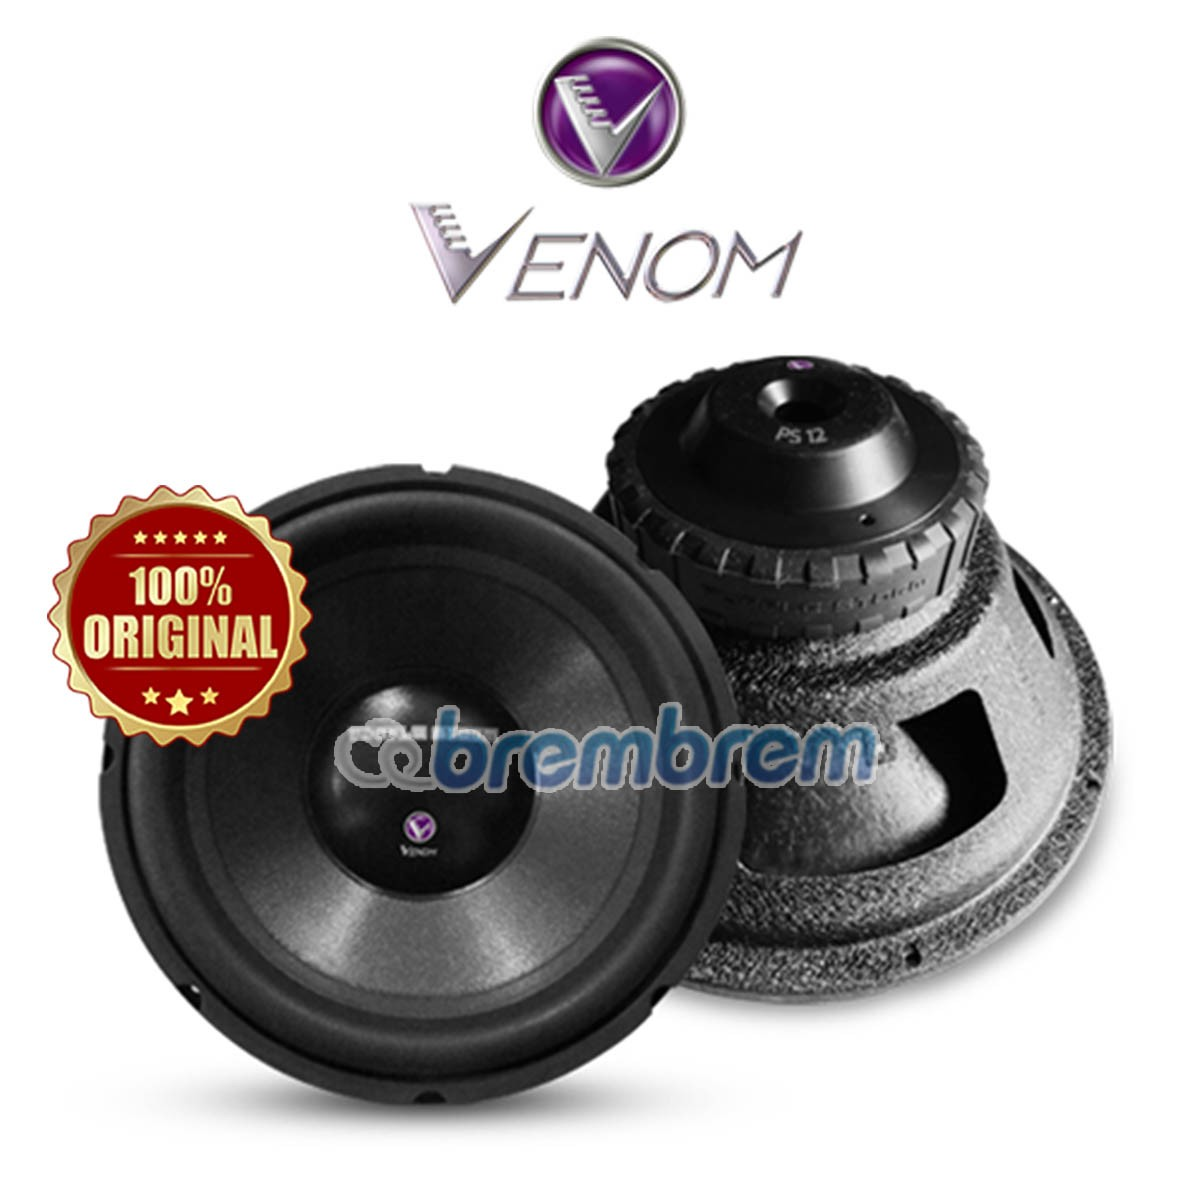 VENOM PURPLE STROM SERIES PS 12 - SUBWOOFER PASIF